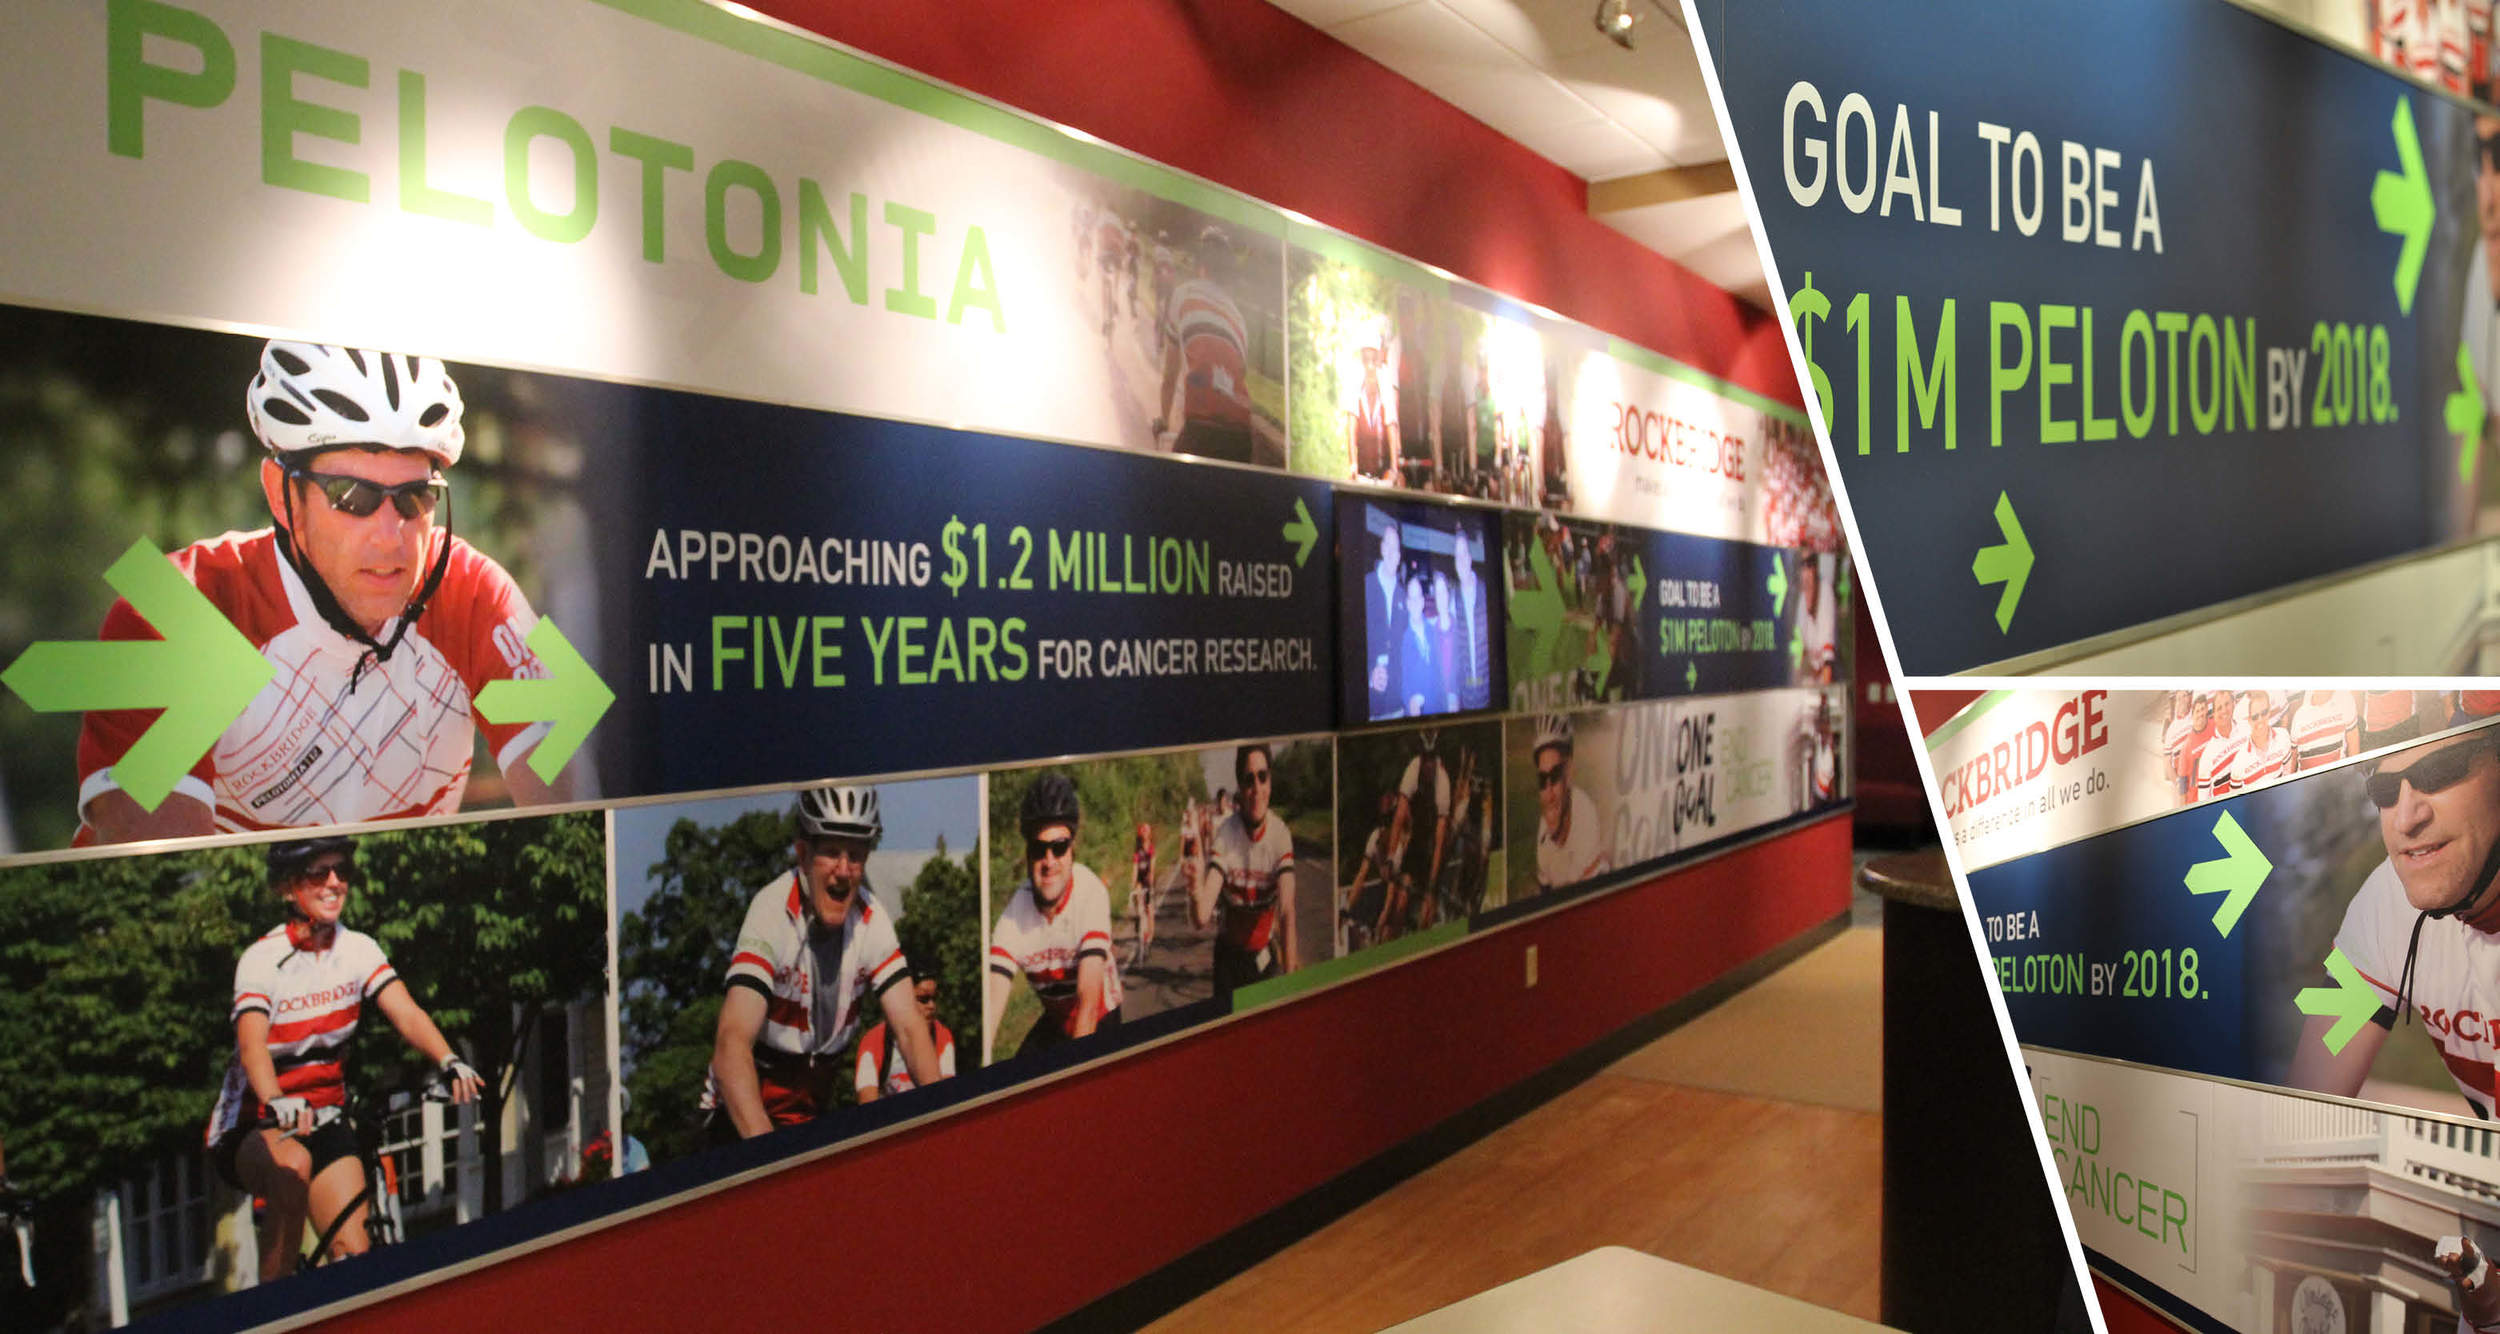 Event Promotional Display  Design, Wall Graphics